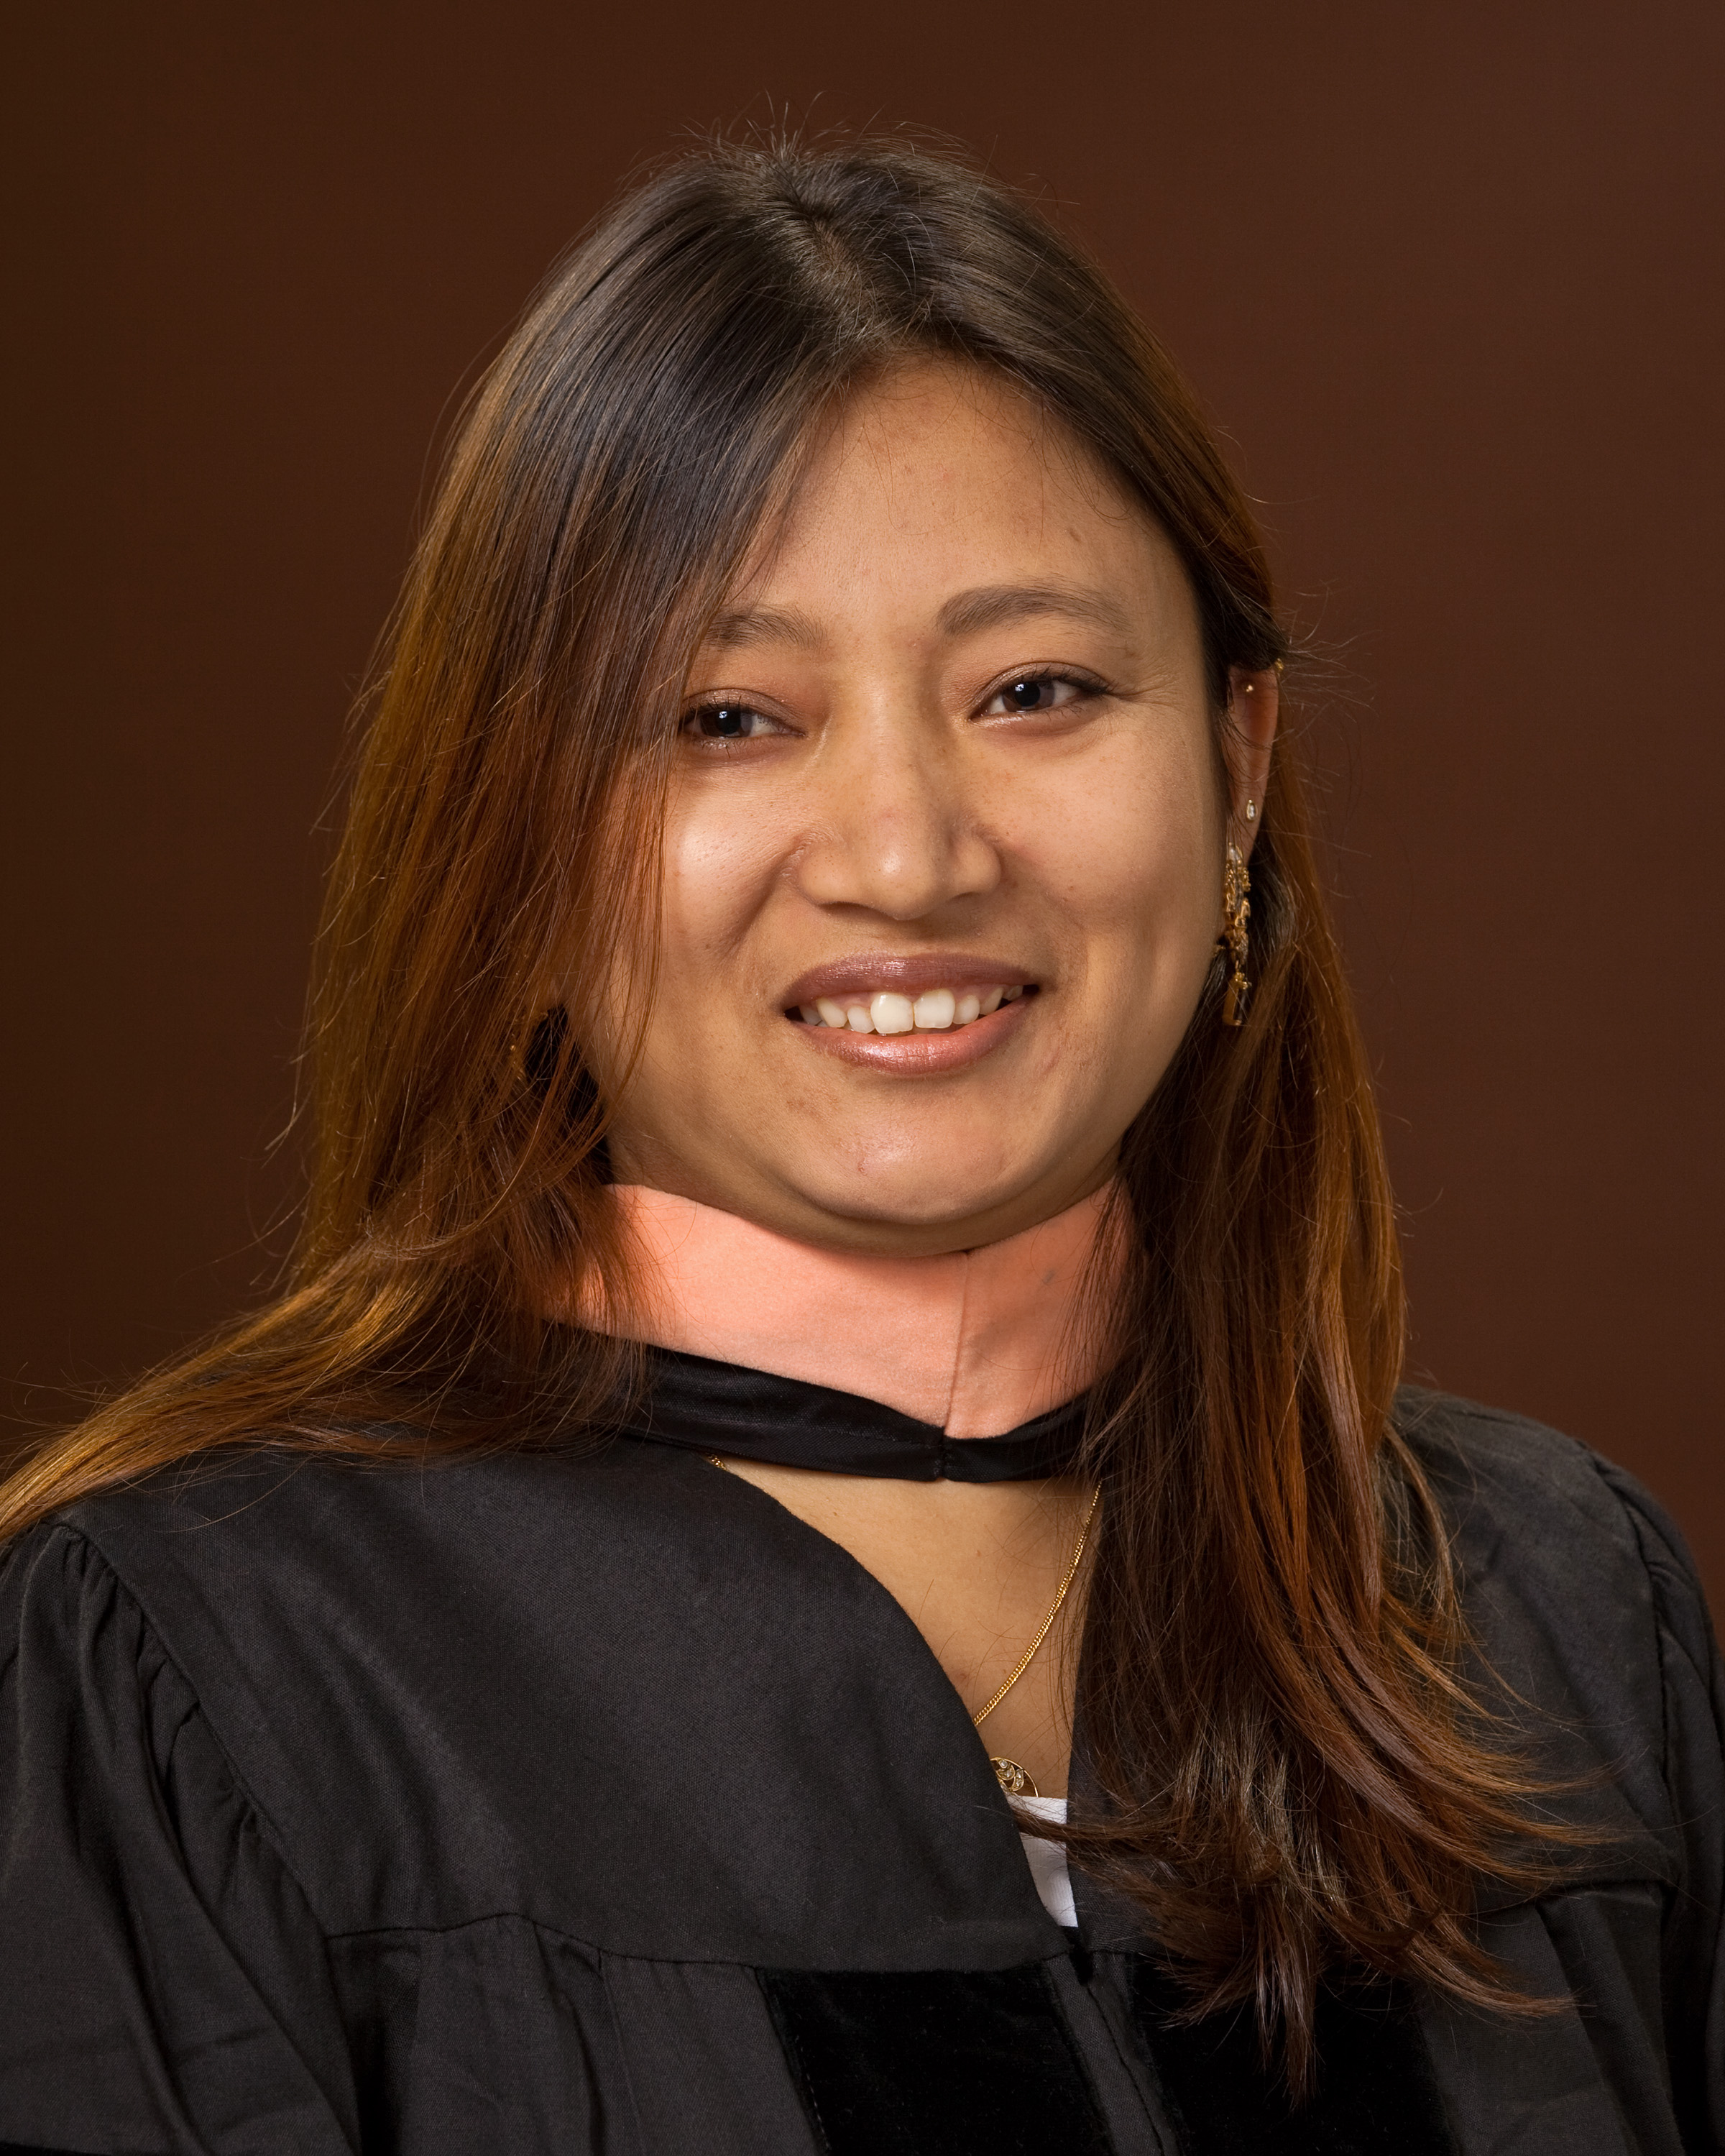 Aruna Shrestha Graduates from Mercer University's School of